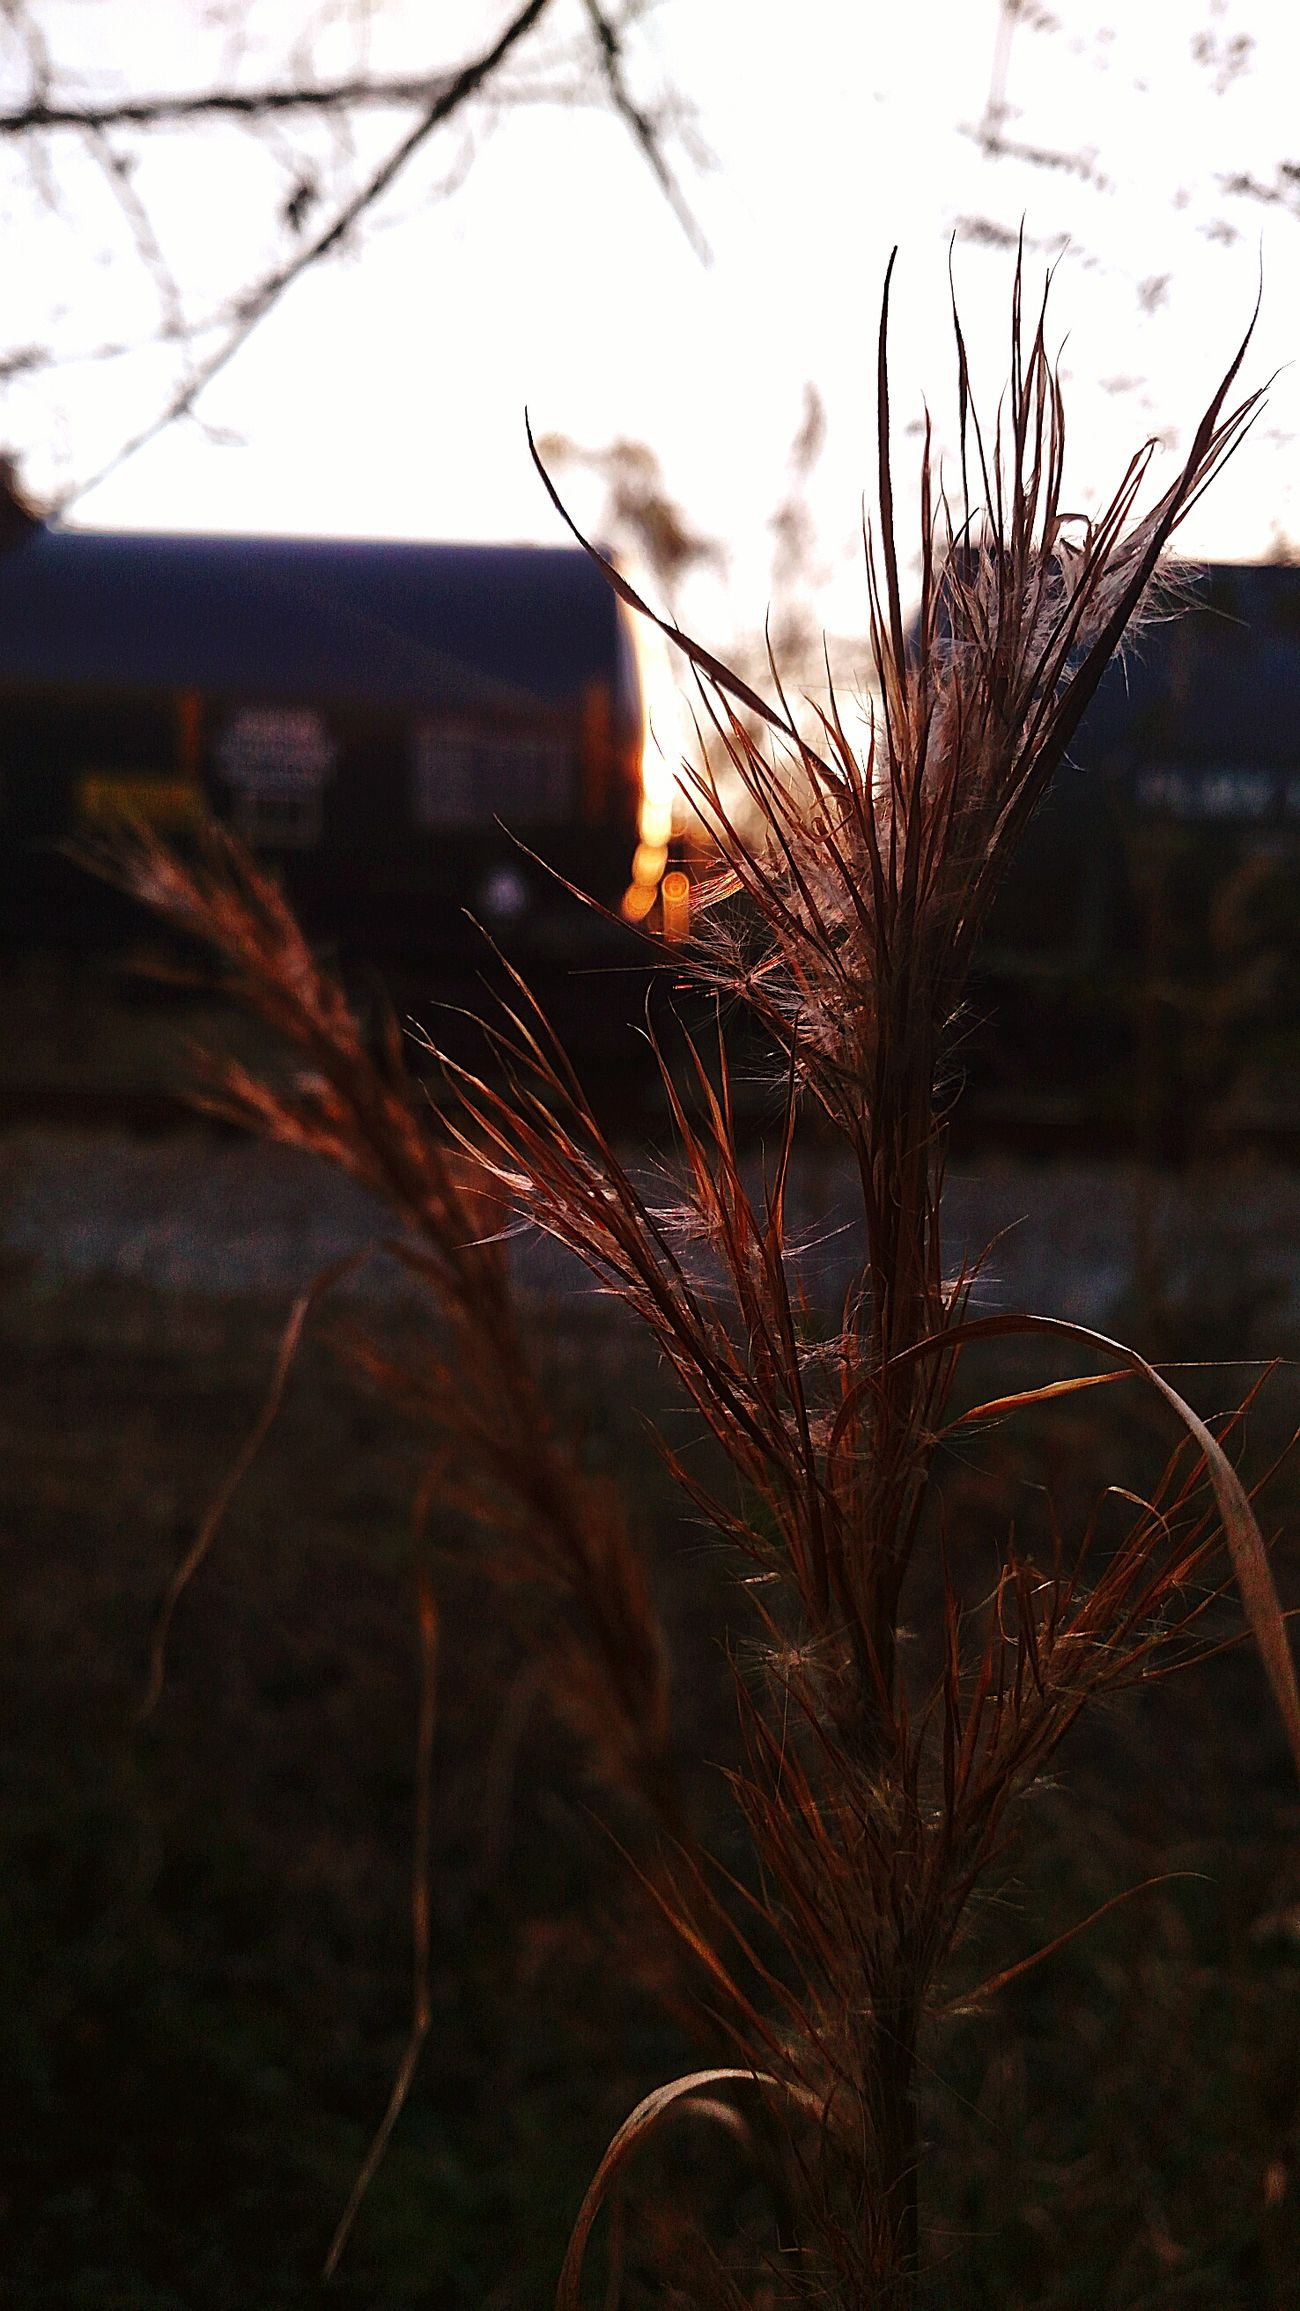 Nature Photography Nature Nature_collection Railroad Photography Freight Transportation Freight Train Train Cars Rail Transportation Railway Track Railroad Evening Evening View Evening Light